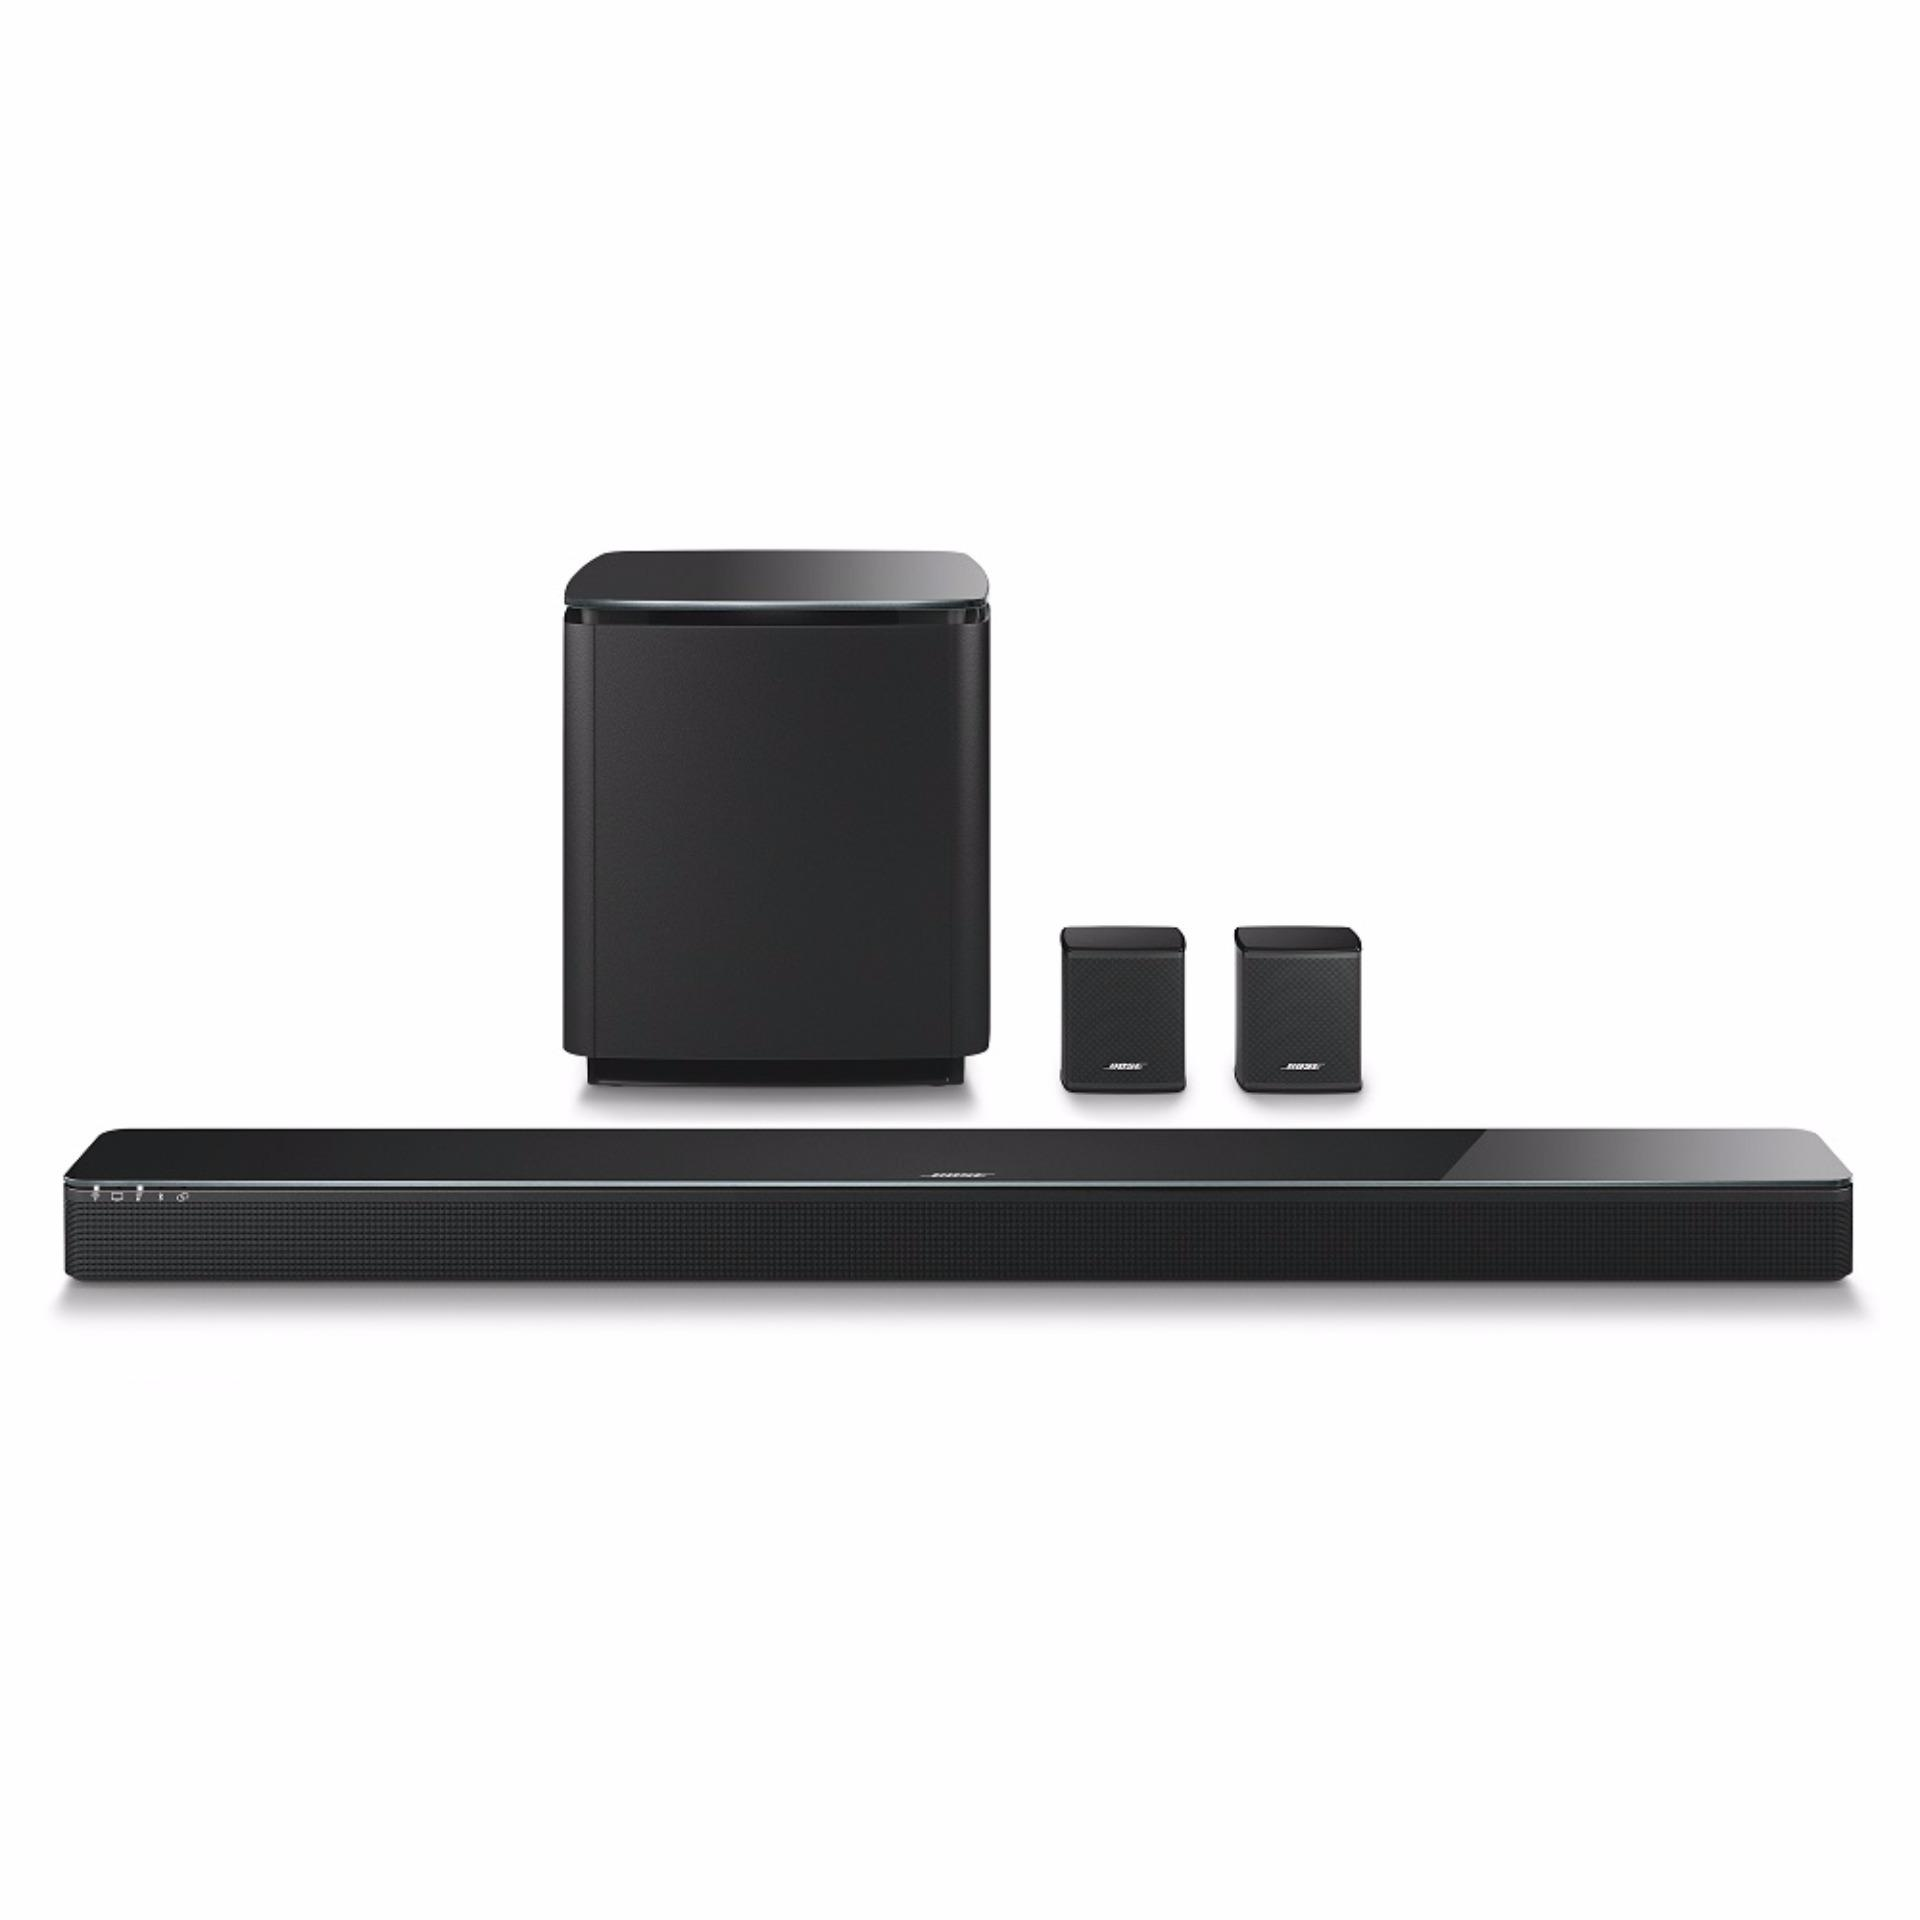 Bose SoundTouch 300 Soundbar + Acoustimass 300 Wireless + Virtually Invisible 300 Wireless Home Theater System